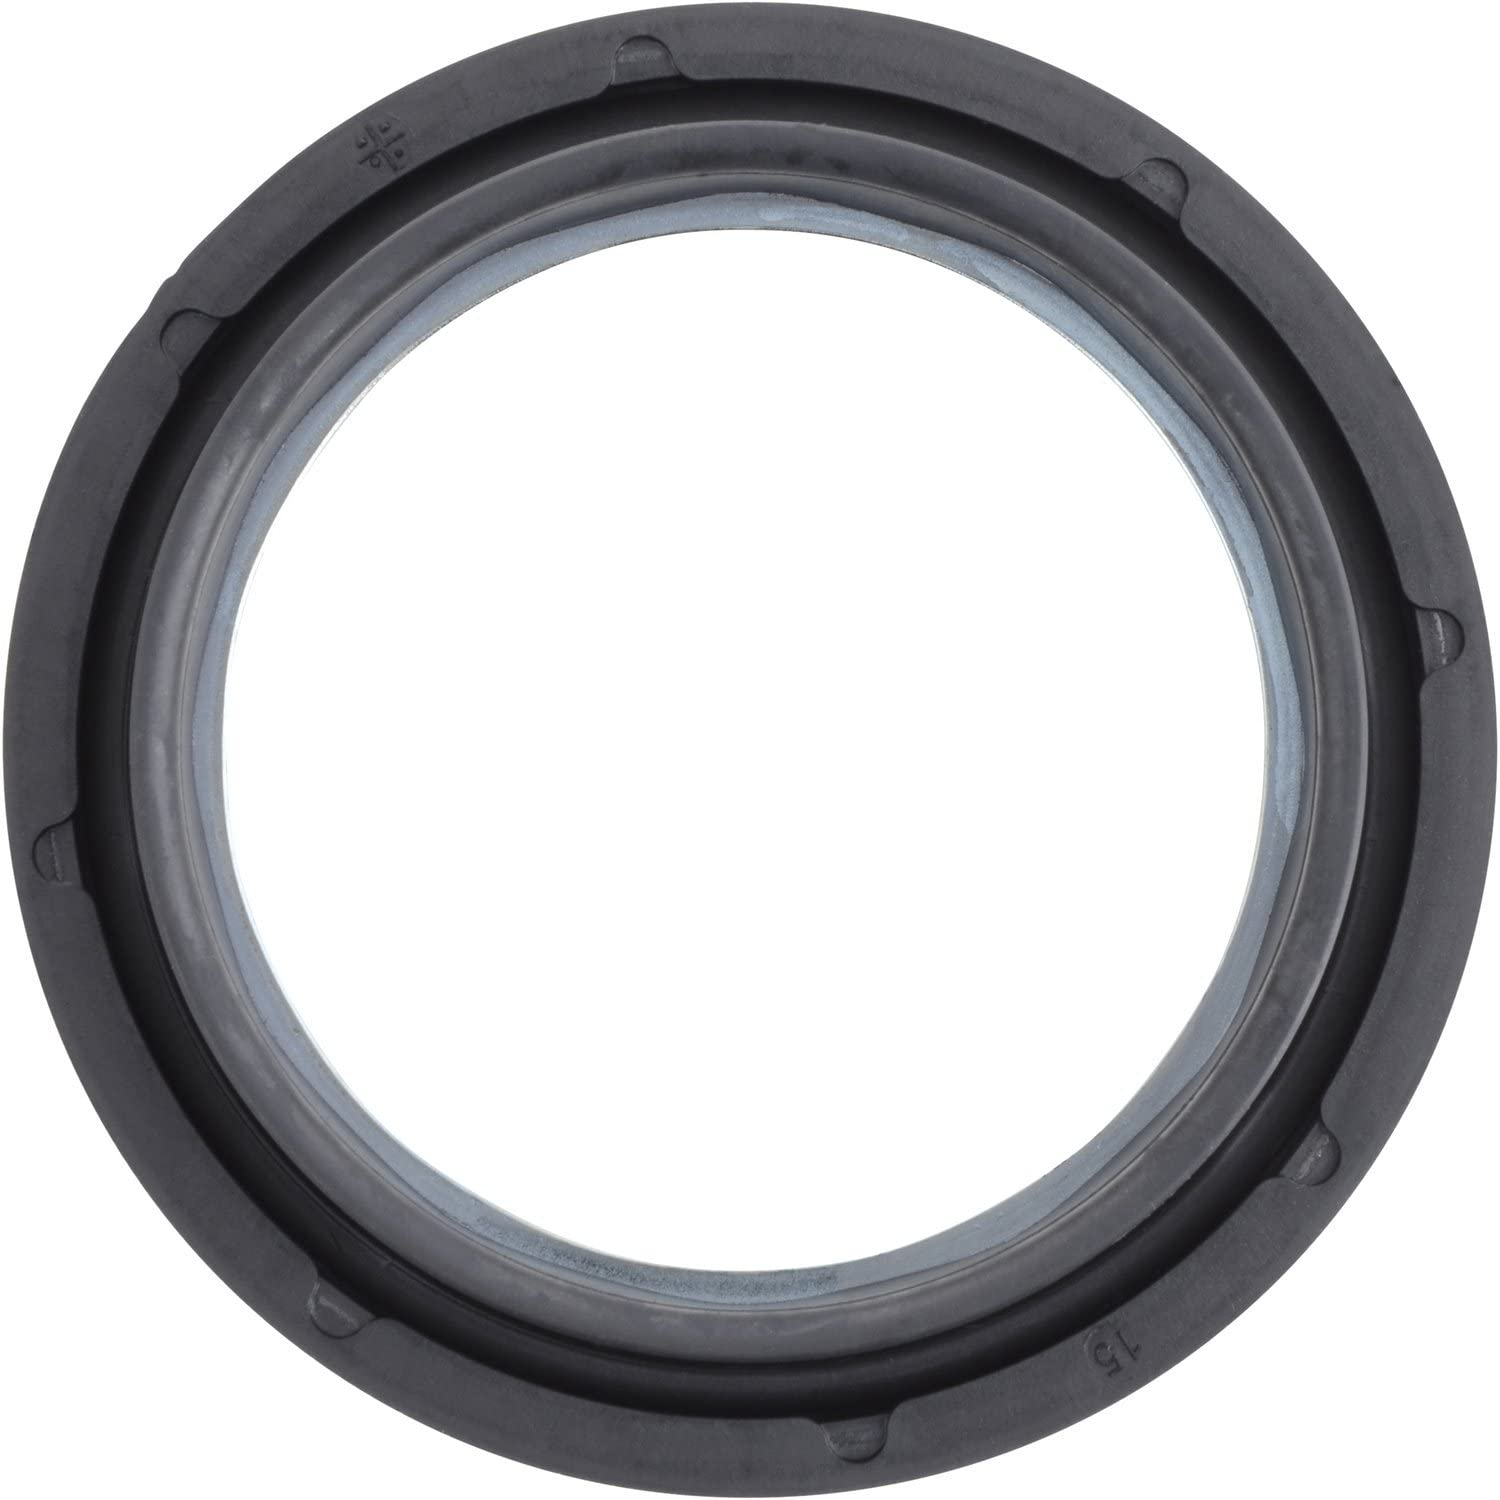 Spicer 50381 Knuckle Seal